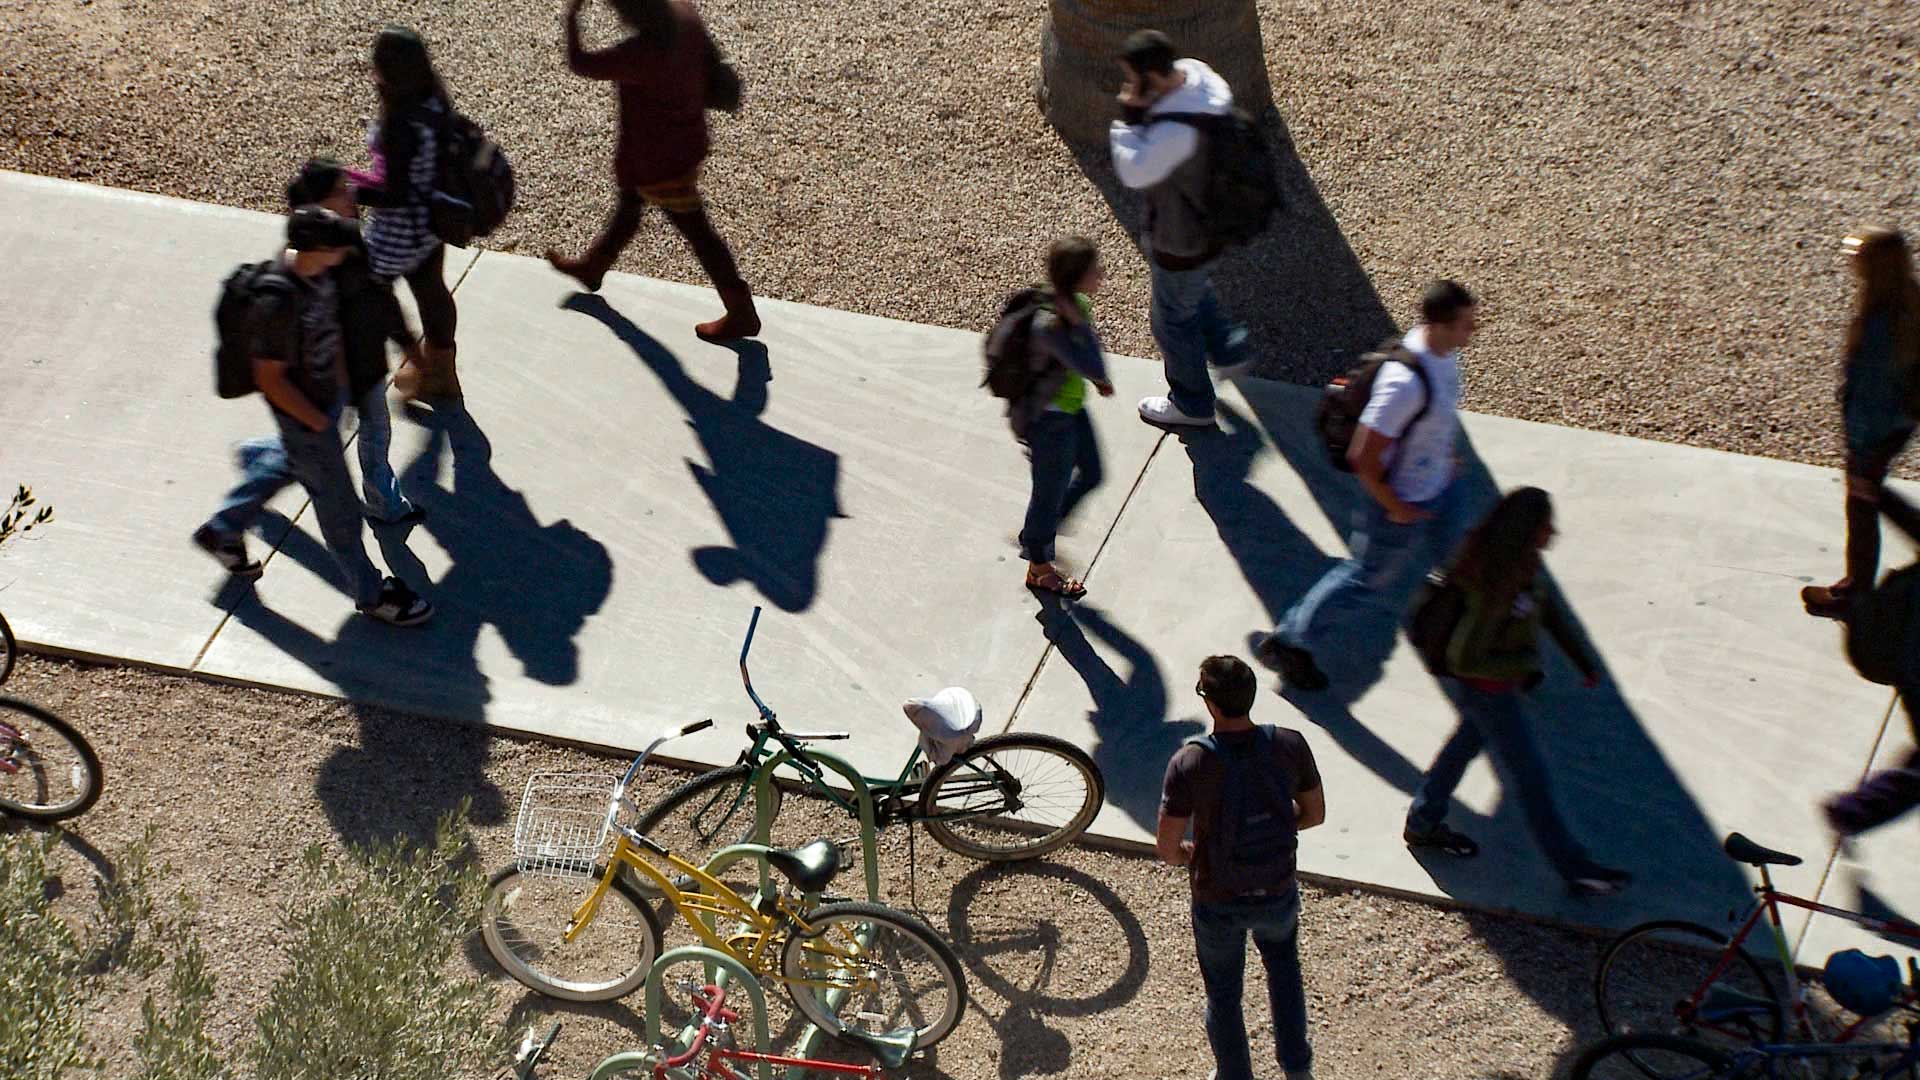 Students at the University of Arizona campus.